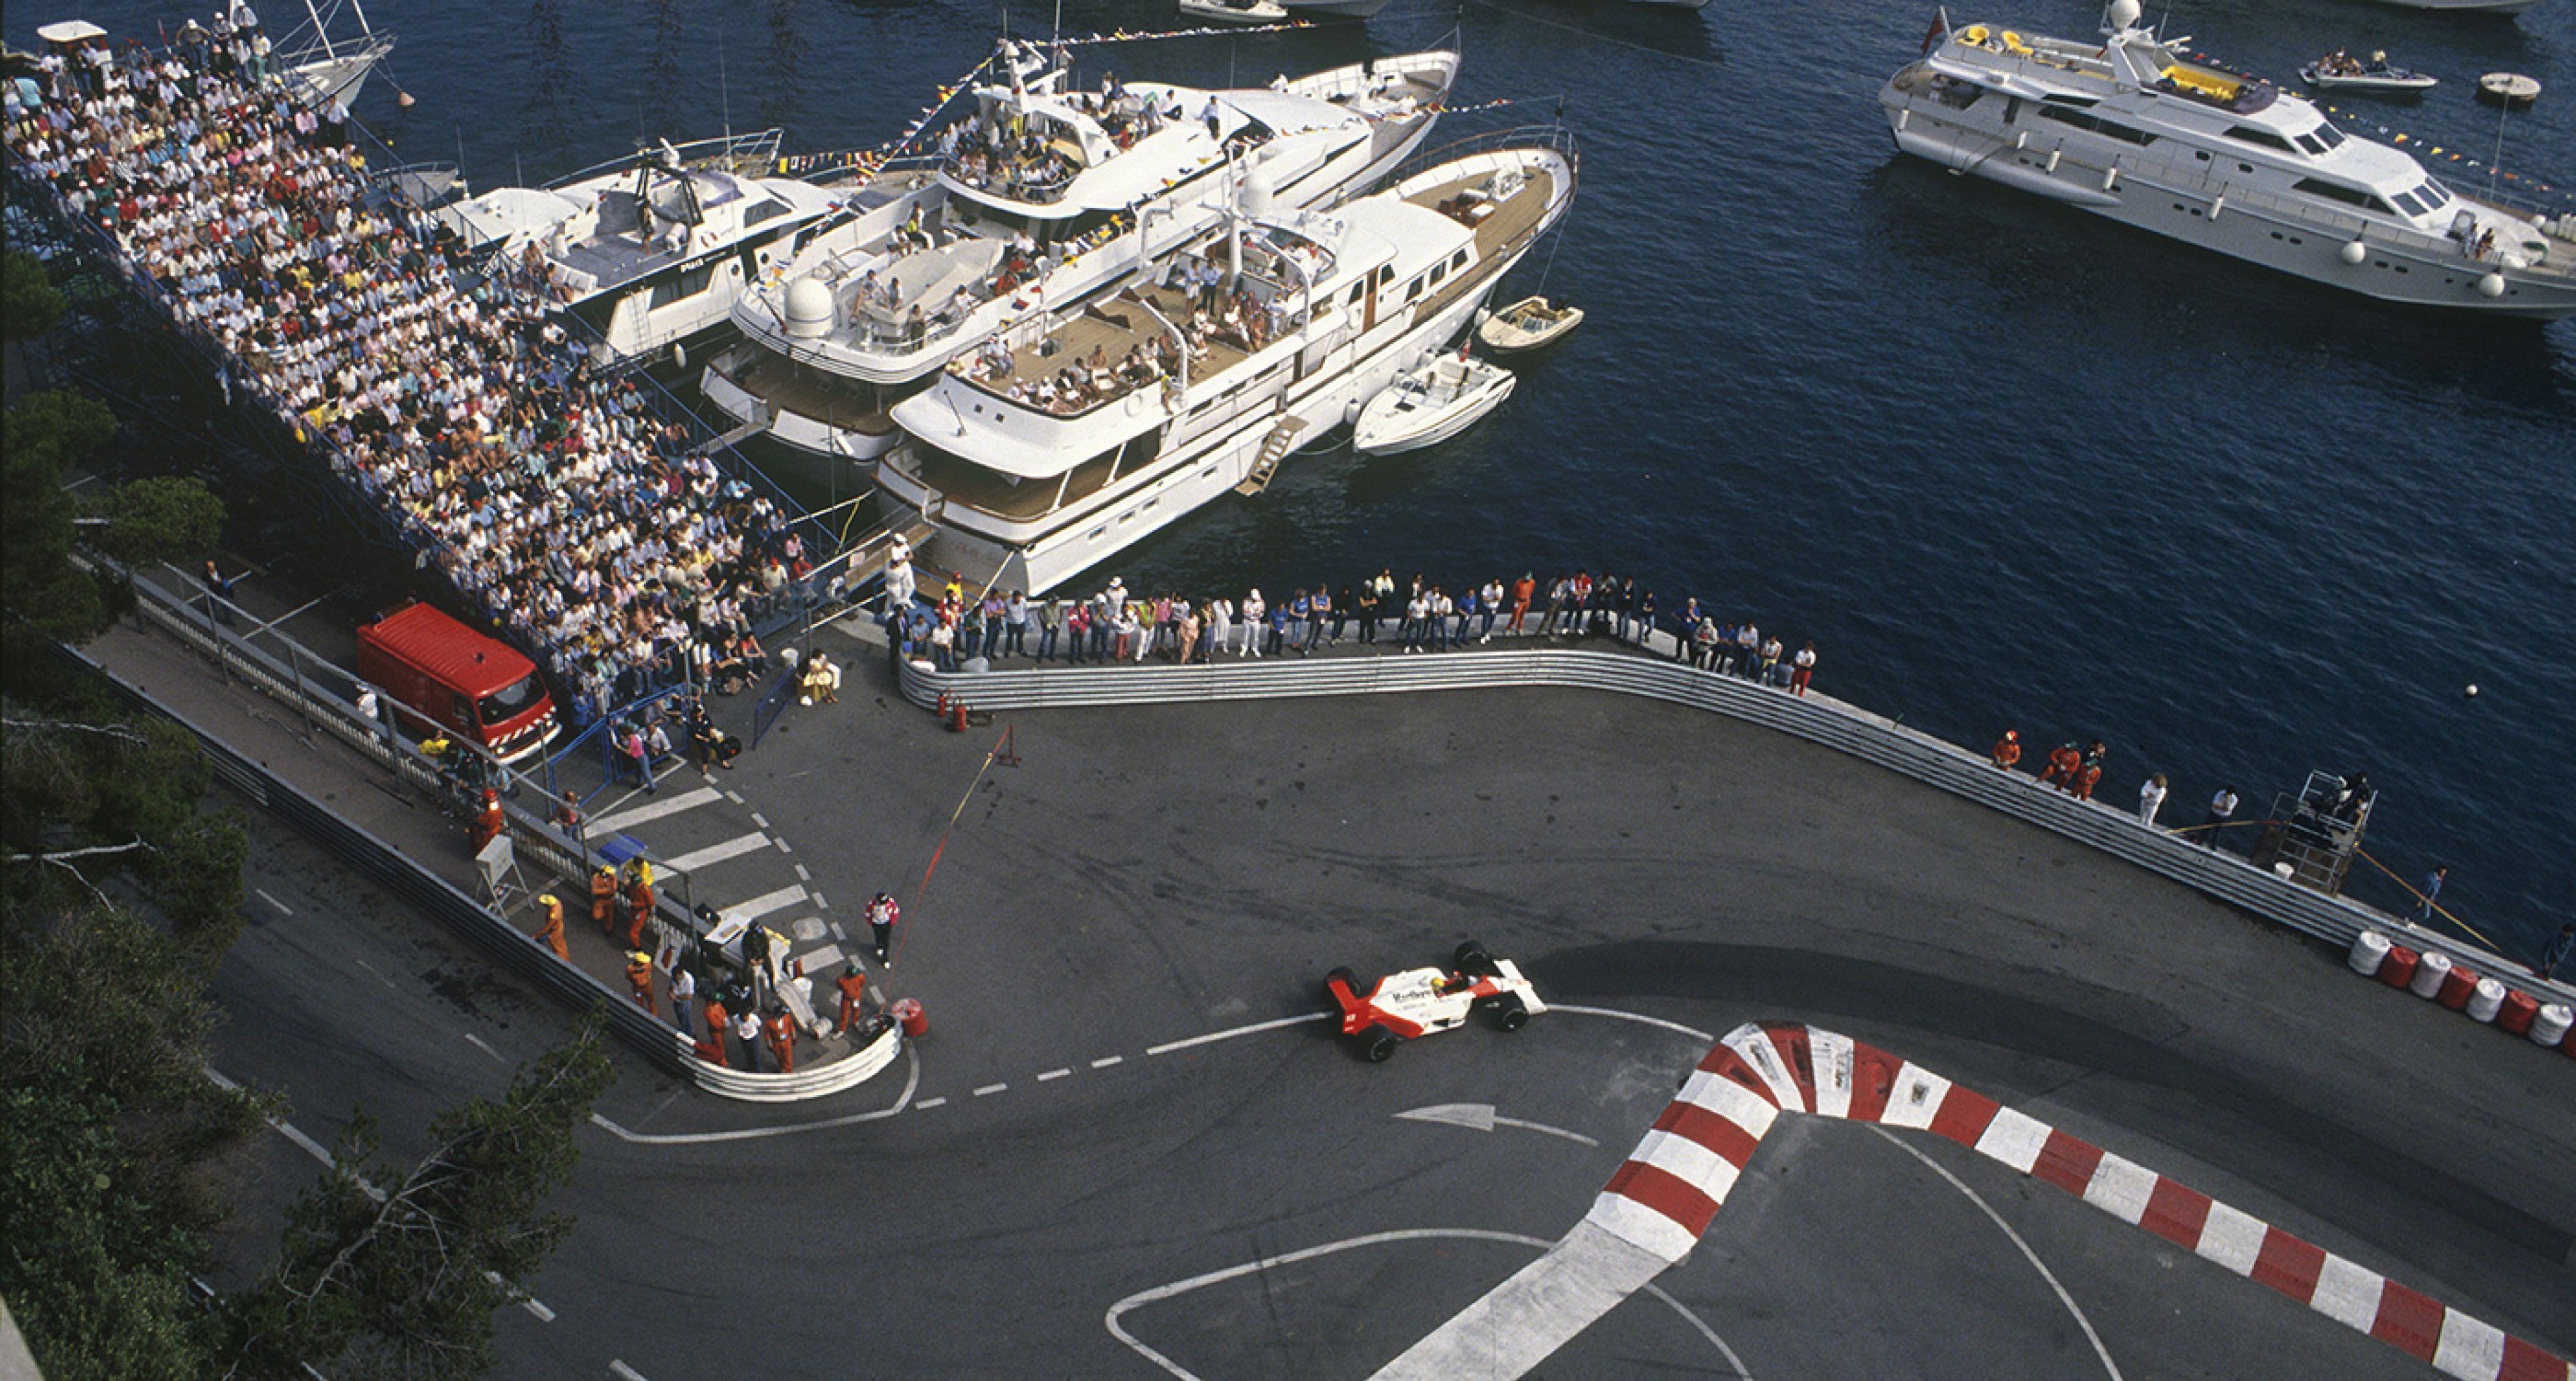 Ayrton Senna sets a legendary qualifying lap at the 1988 Monaco GP